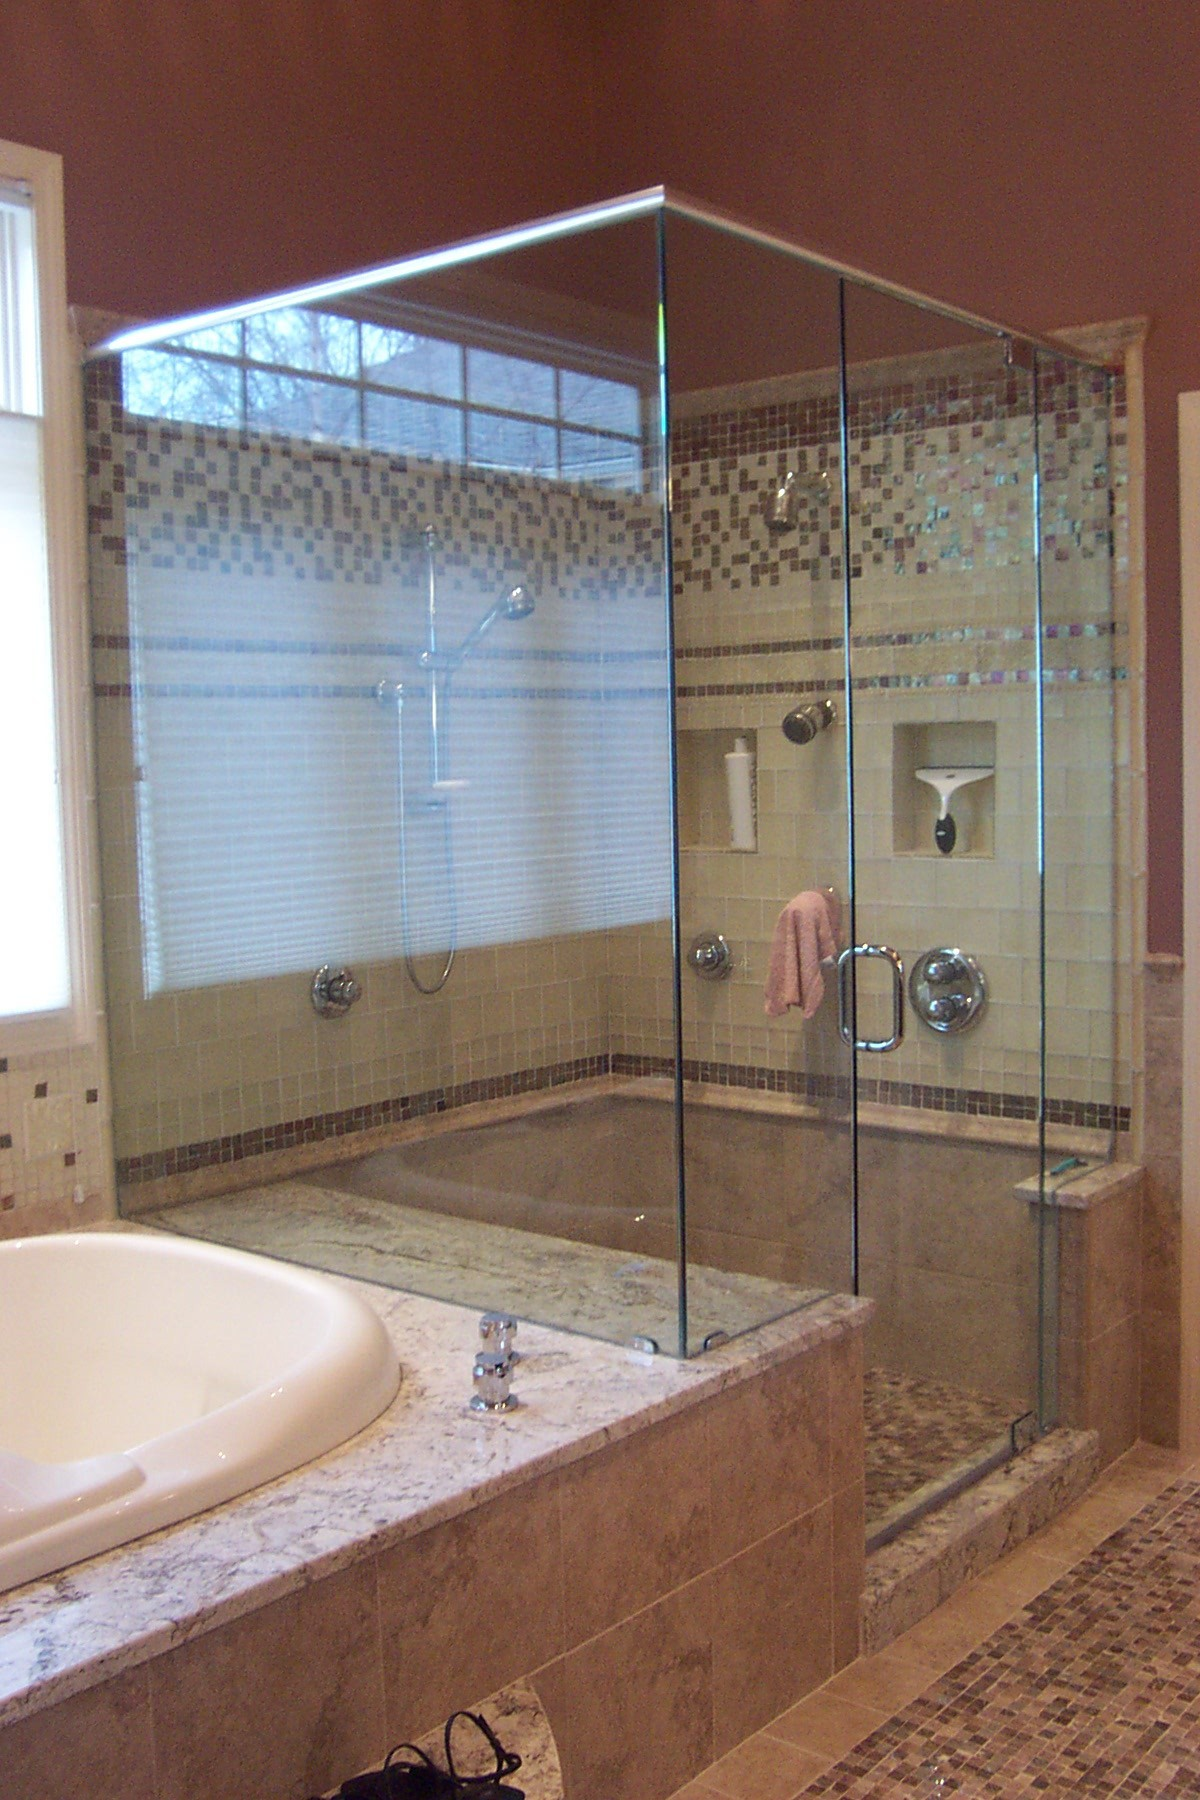 Rochester Bathroom Remodeling Team Compares The Benefits Of Installing A Bath Or Shower Stall